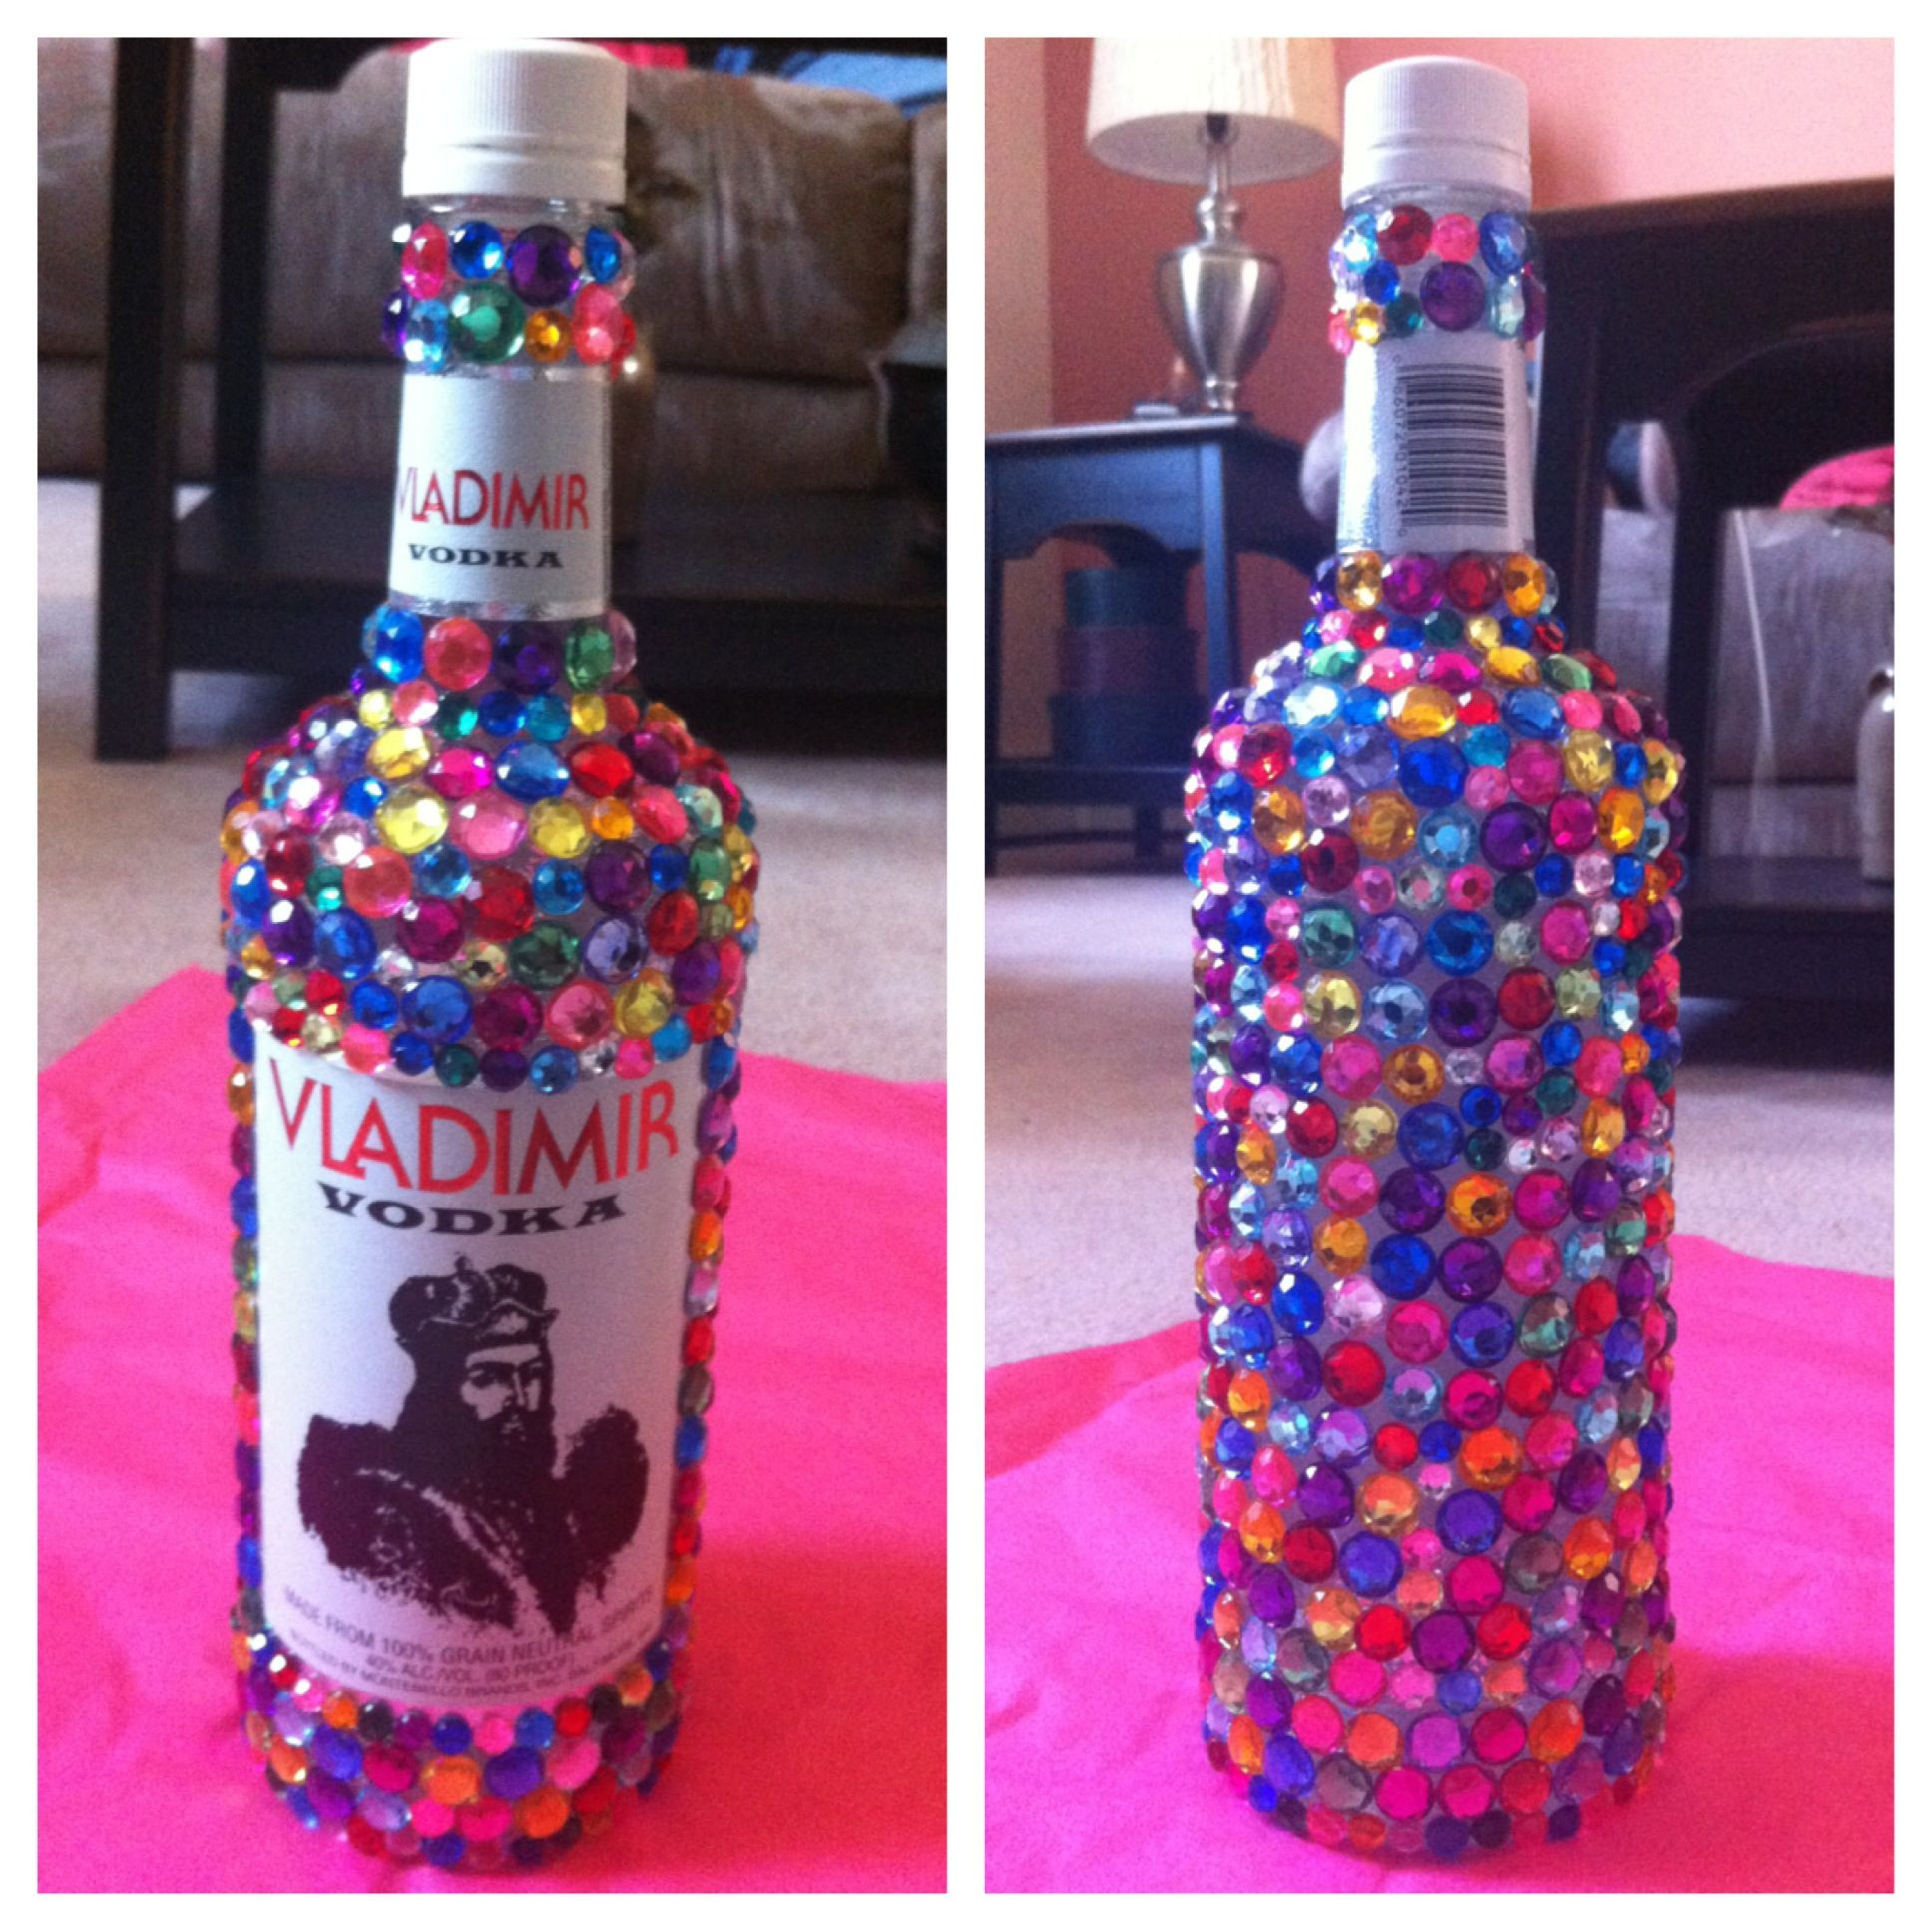 vase filler beads michaels of bedazzled alcohol bottle for a 21st birthday easy to make 1 buy for buy bottle of choice and gems michaels hobby lobby ac moore etc 2 apply generous amount of mod podge 3